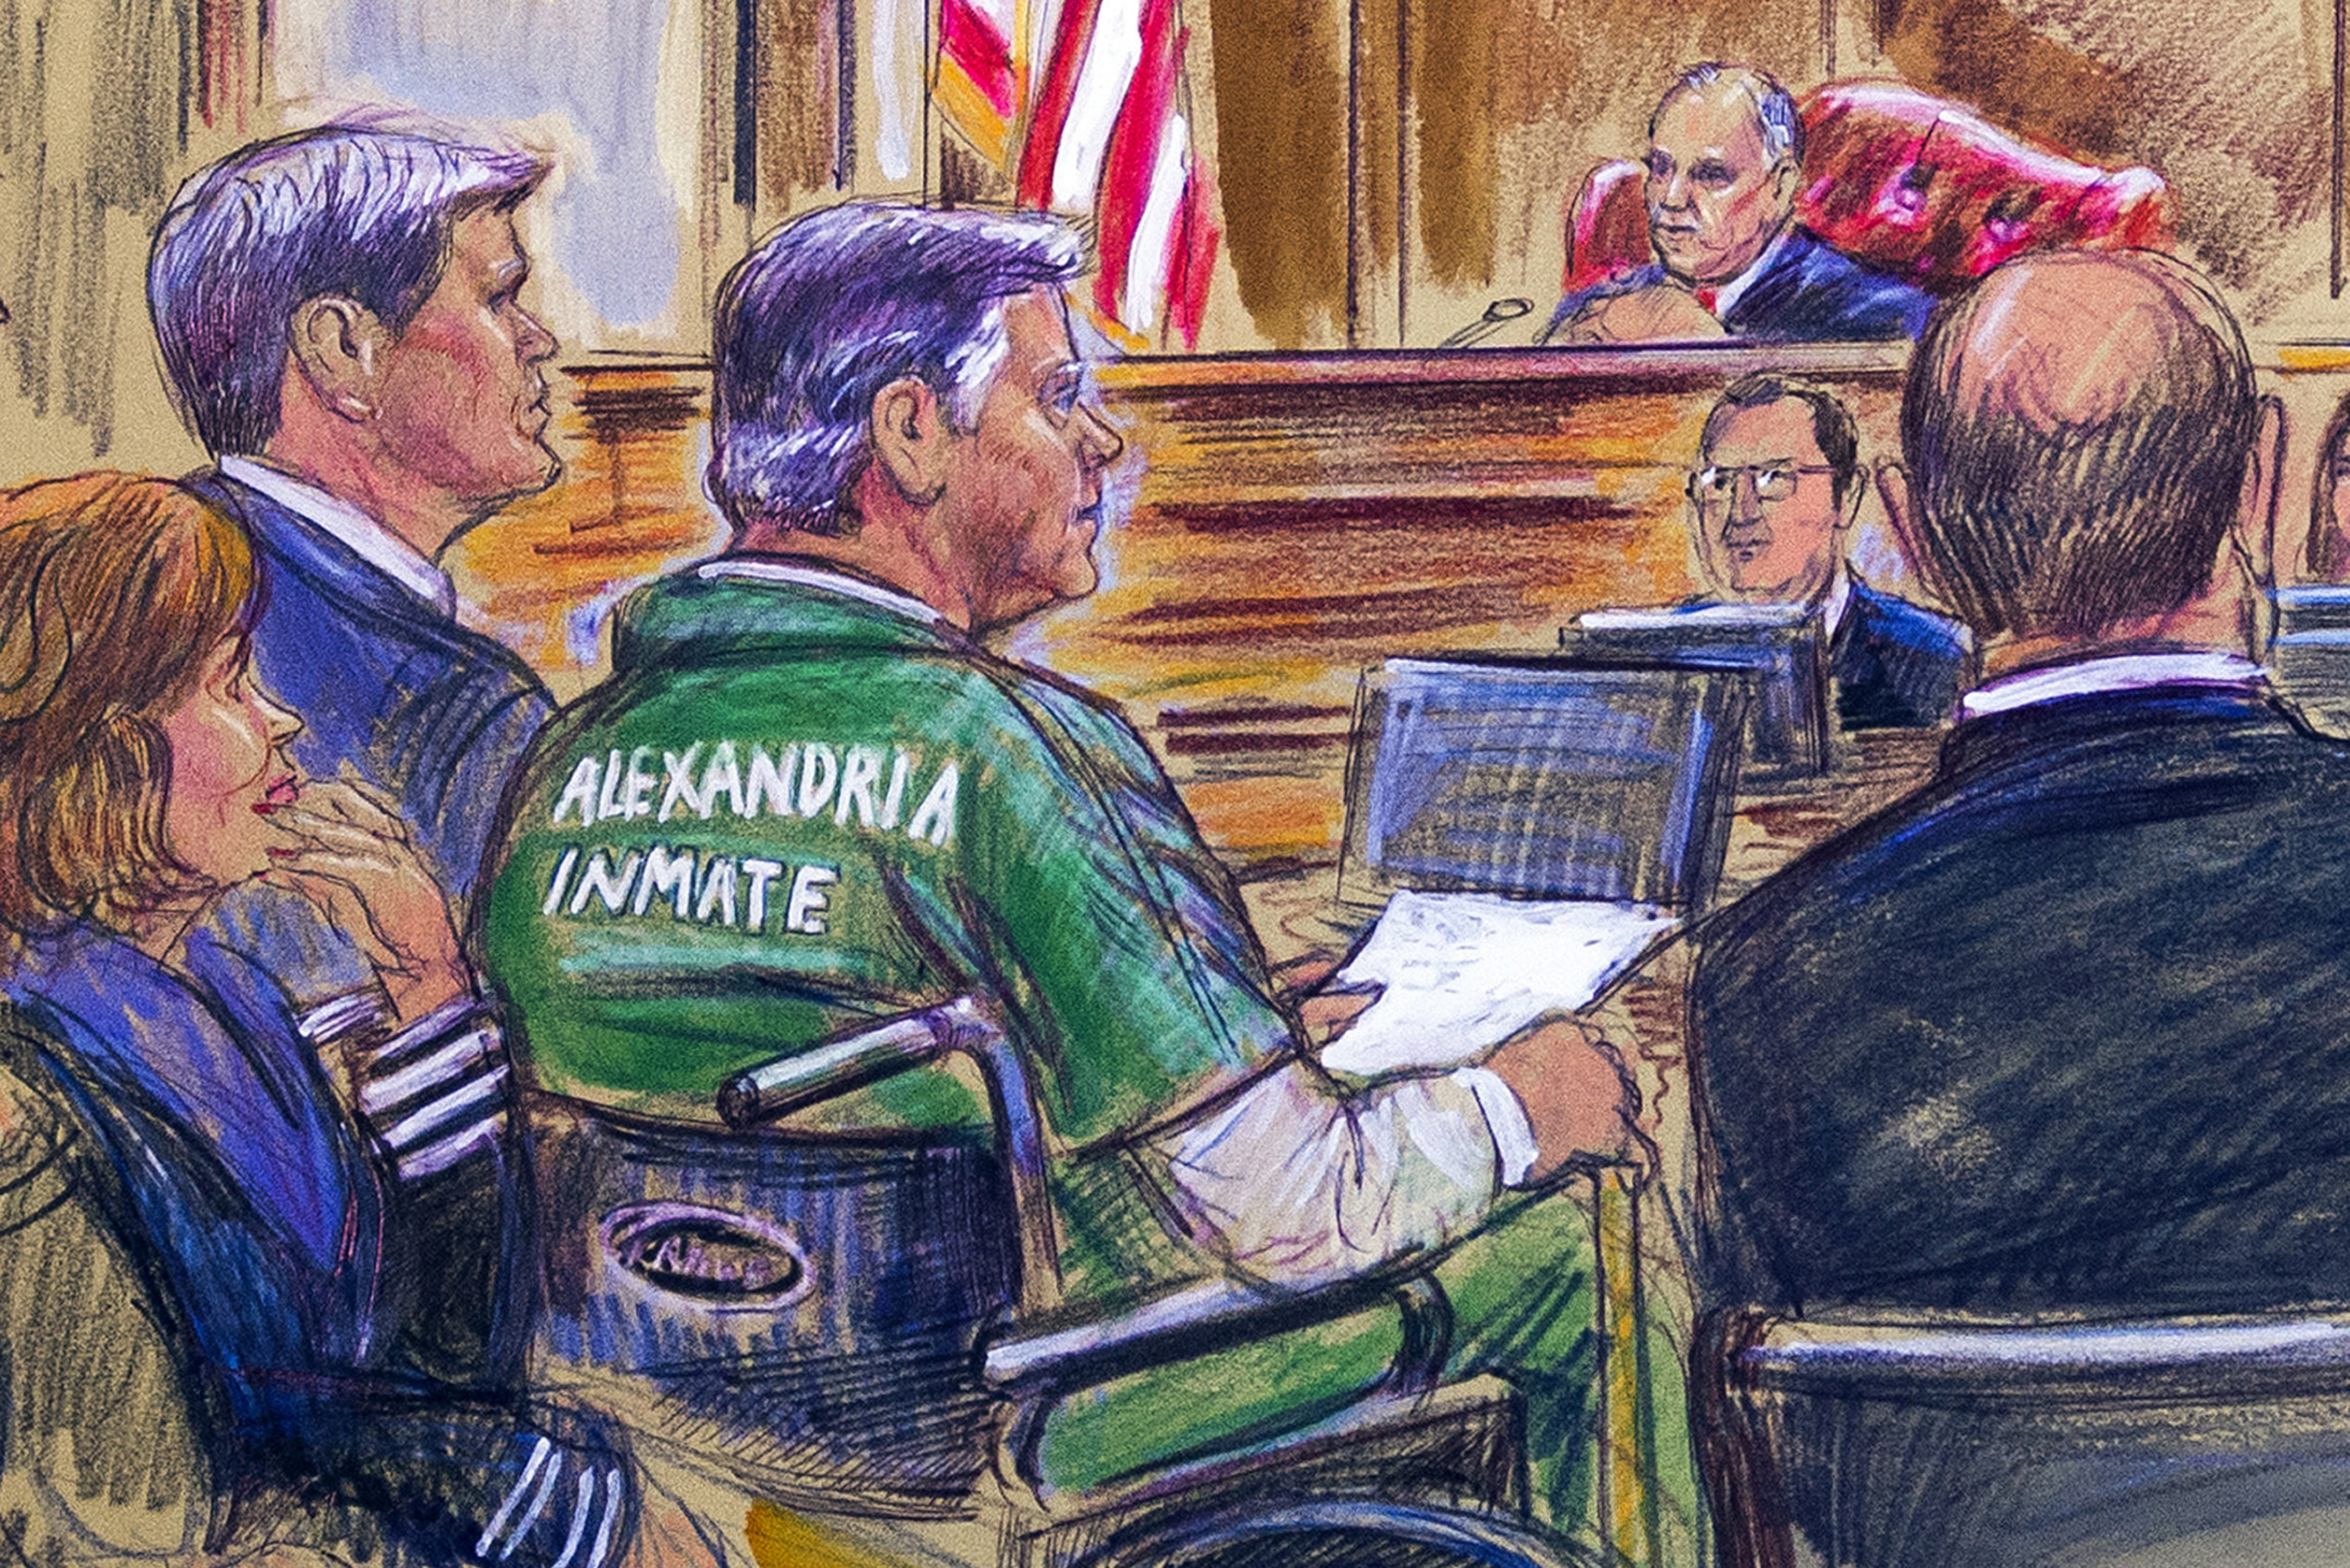 Paul Manafort returns to court for another sentencing